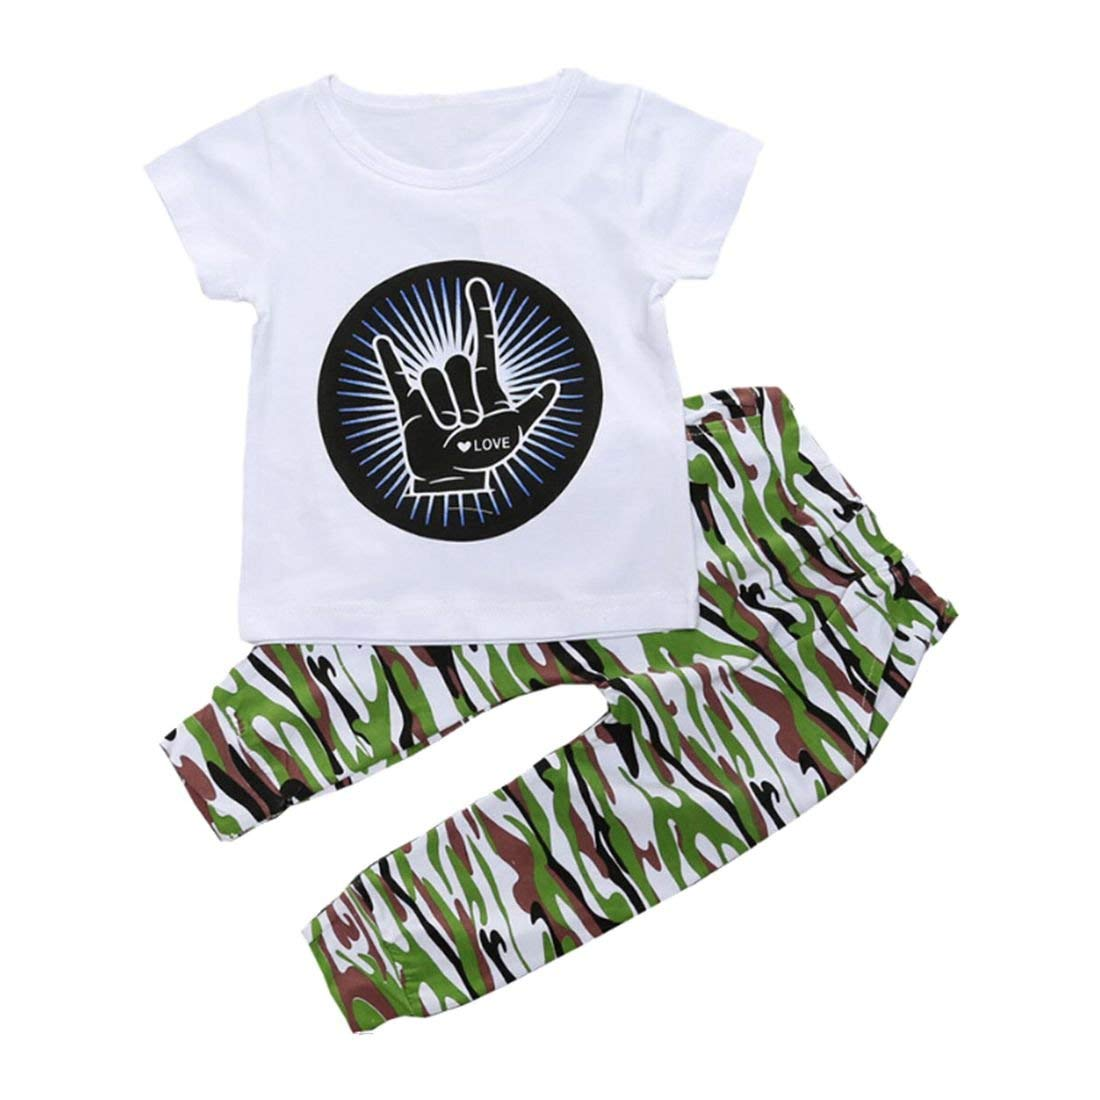 09571631edd8 Get Quotations · SODIAL Casual Toddler Baby Kids Boys Clothes t T-Shirt  Tops Camouflage Pants Outfits